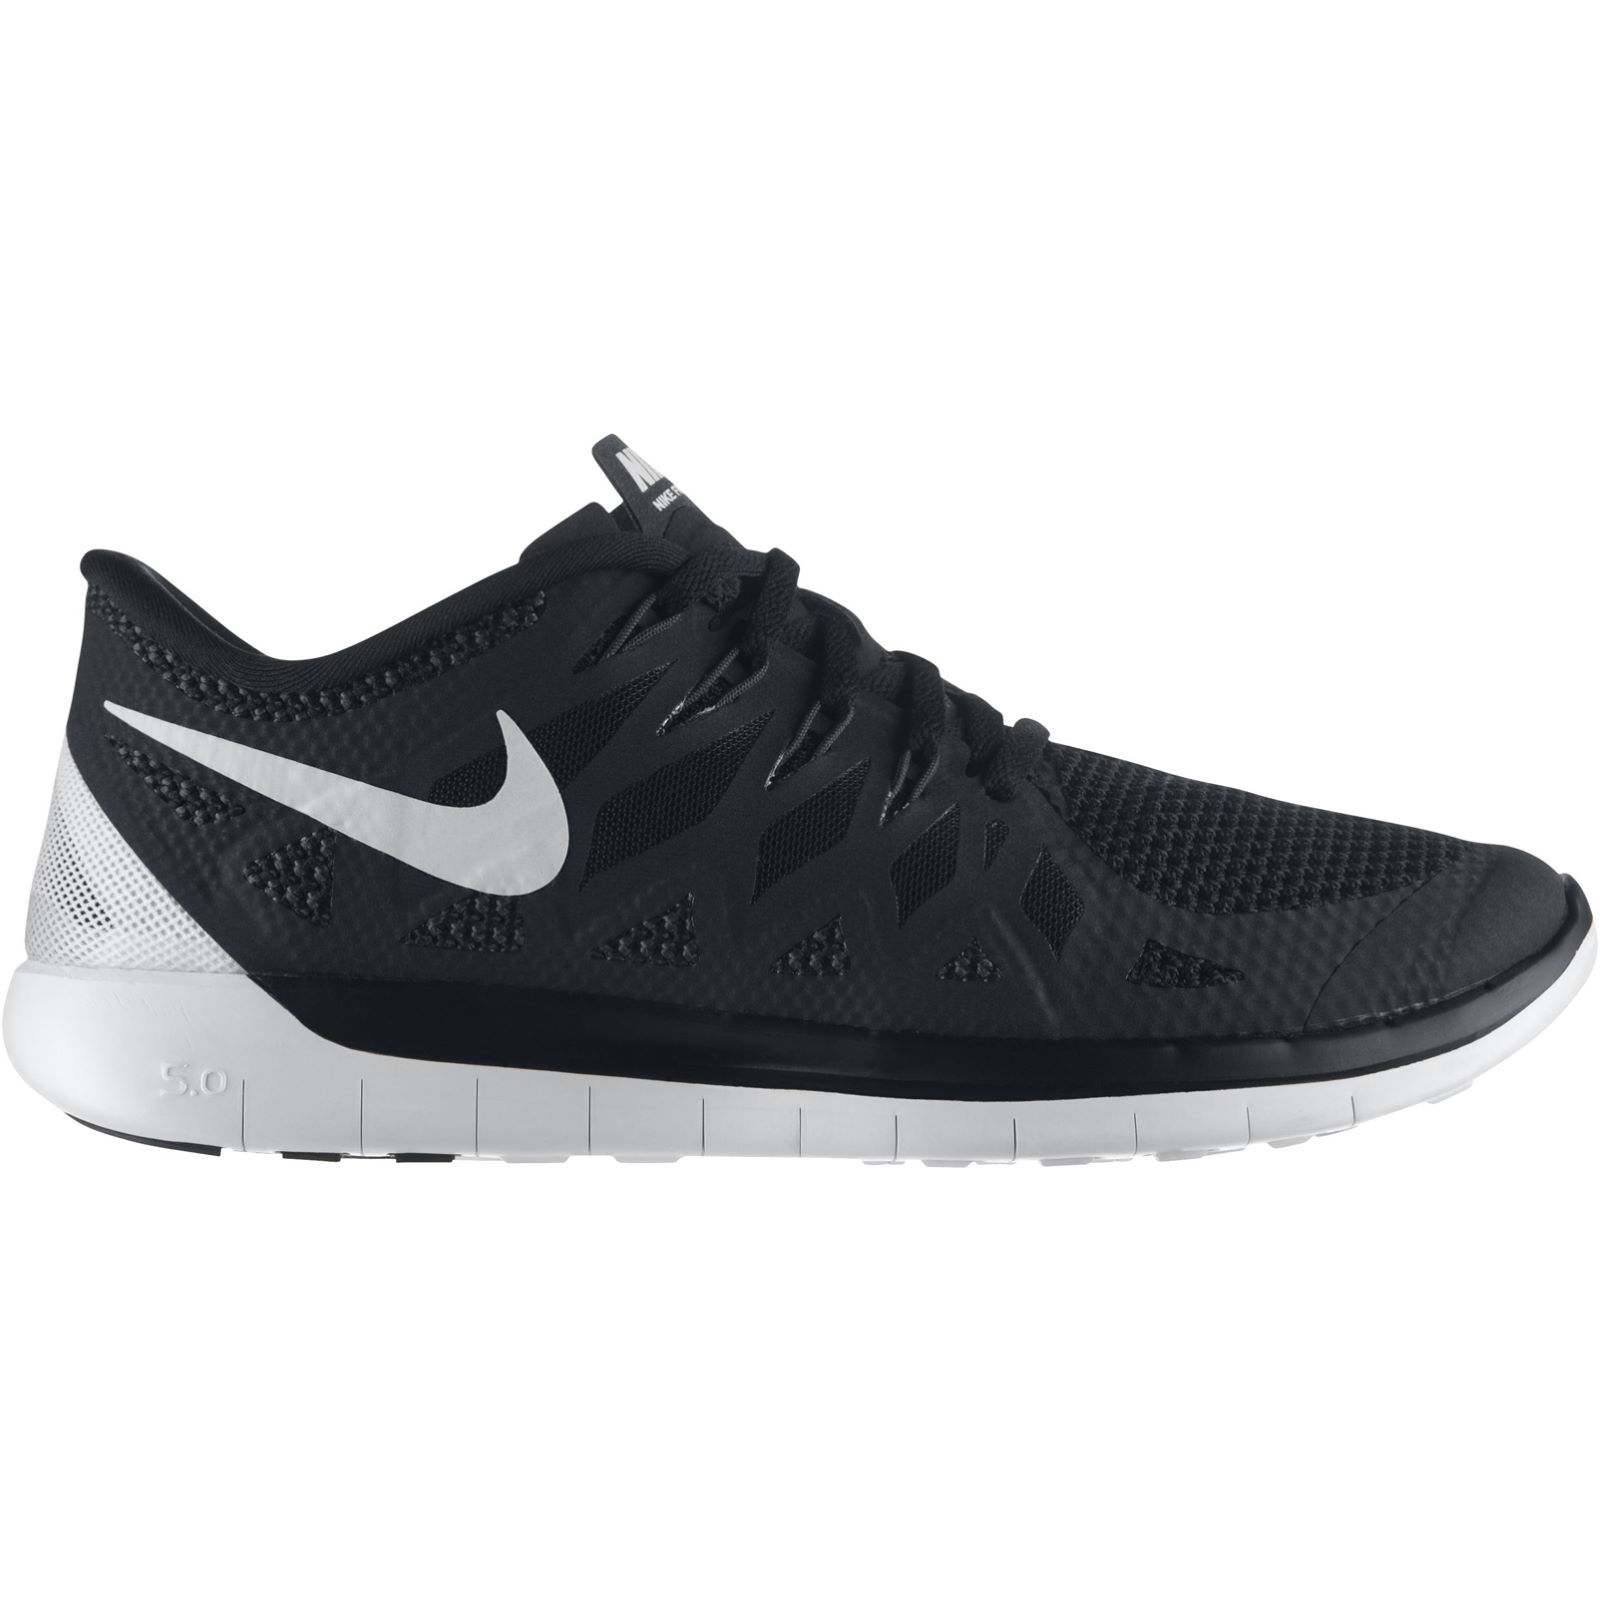 wiggle nike free 5 0 shoes sp15 training running shoes. Black Bedroom Furniture Sets. Home Design Ideas